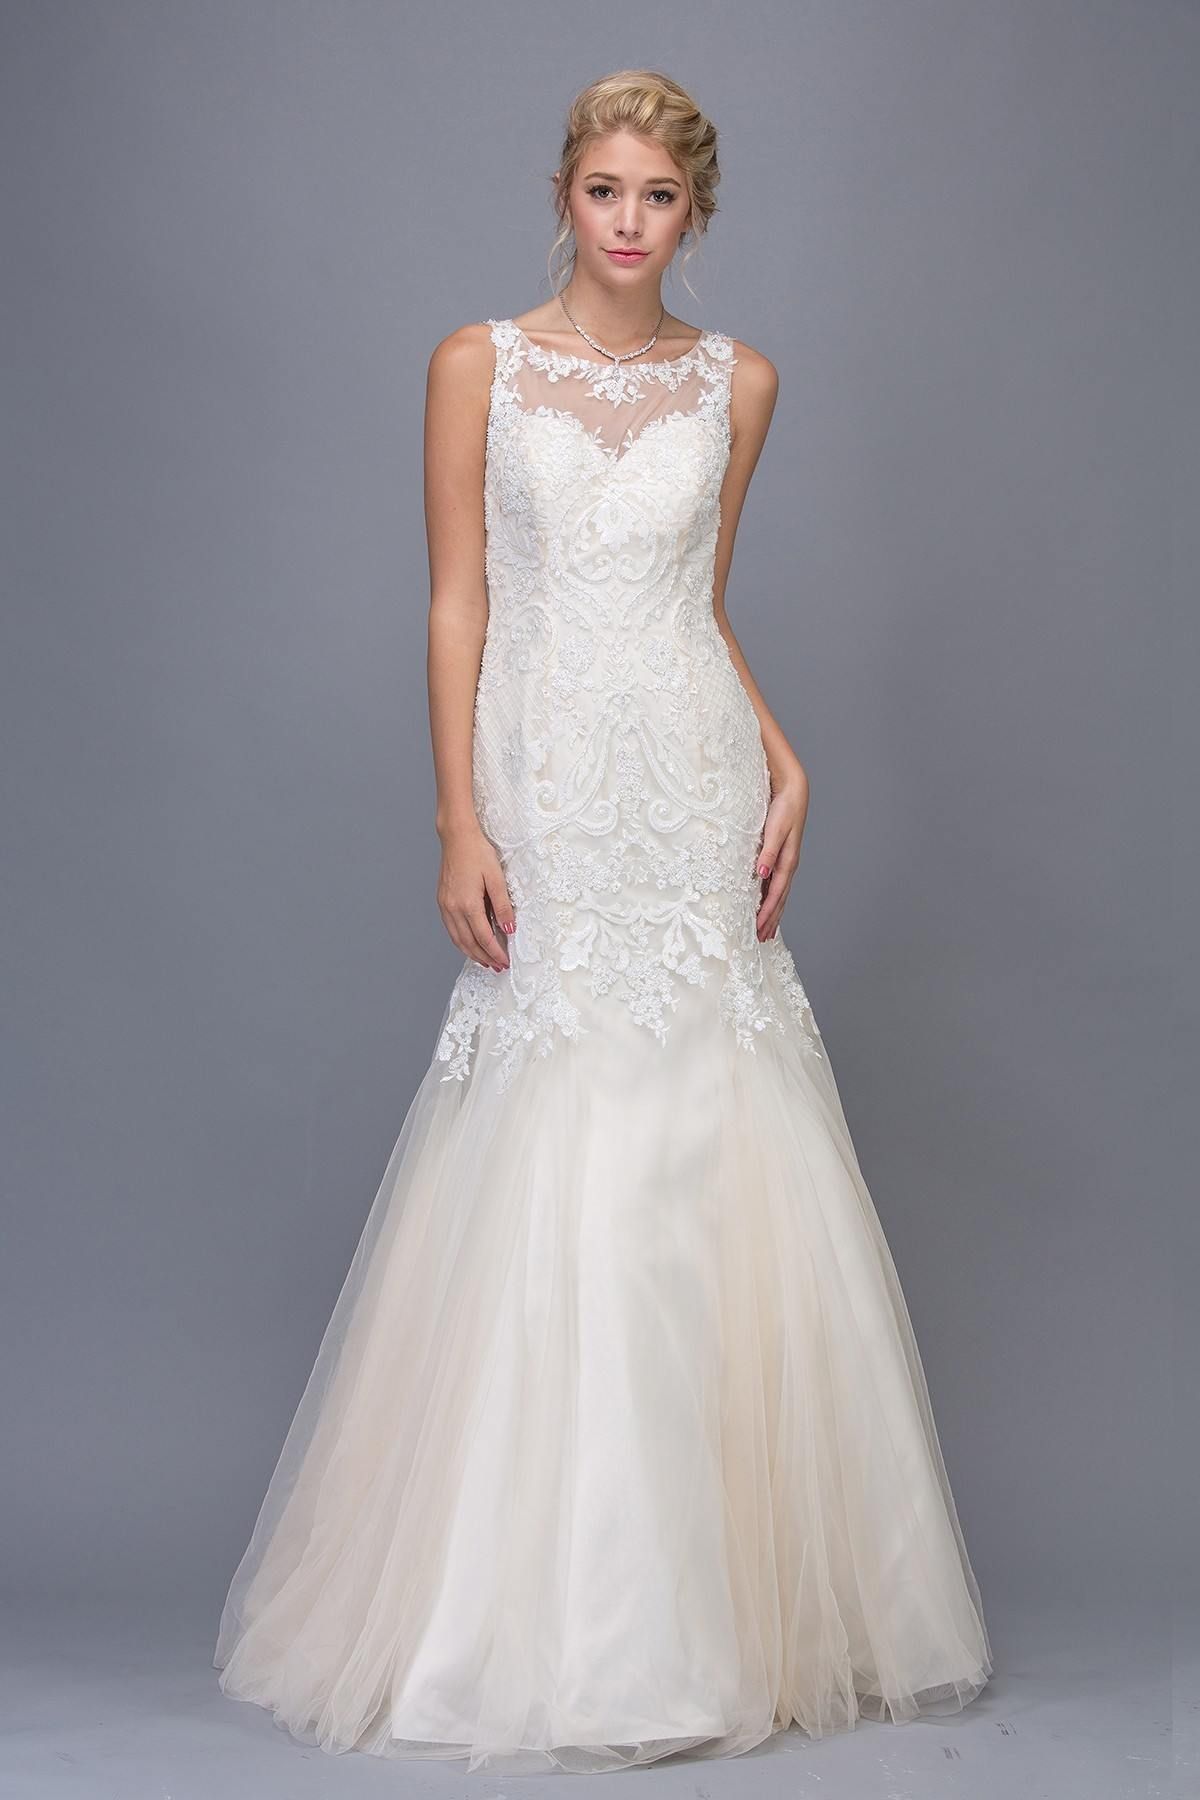 Eureka Fashion 6701 Illusion Mermaid Lace Wedding Gown Ivory ...